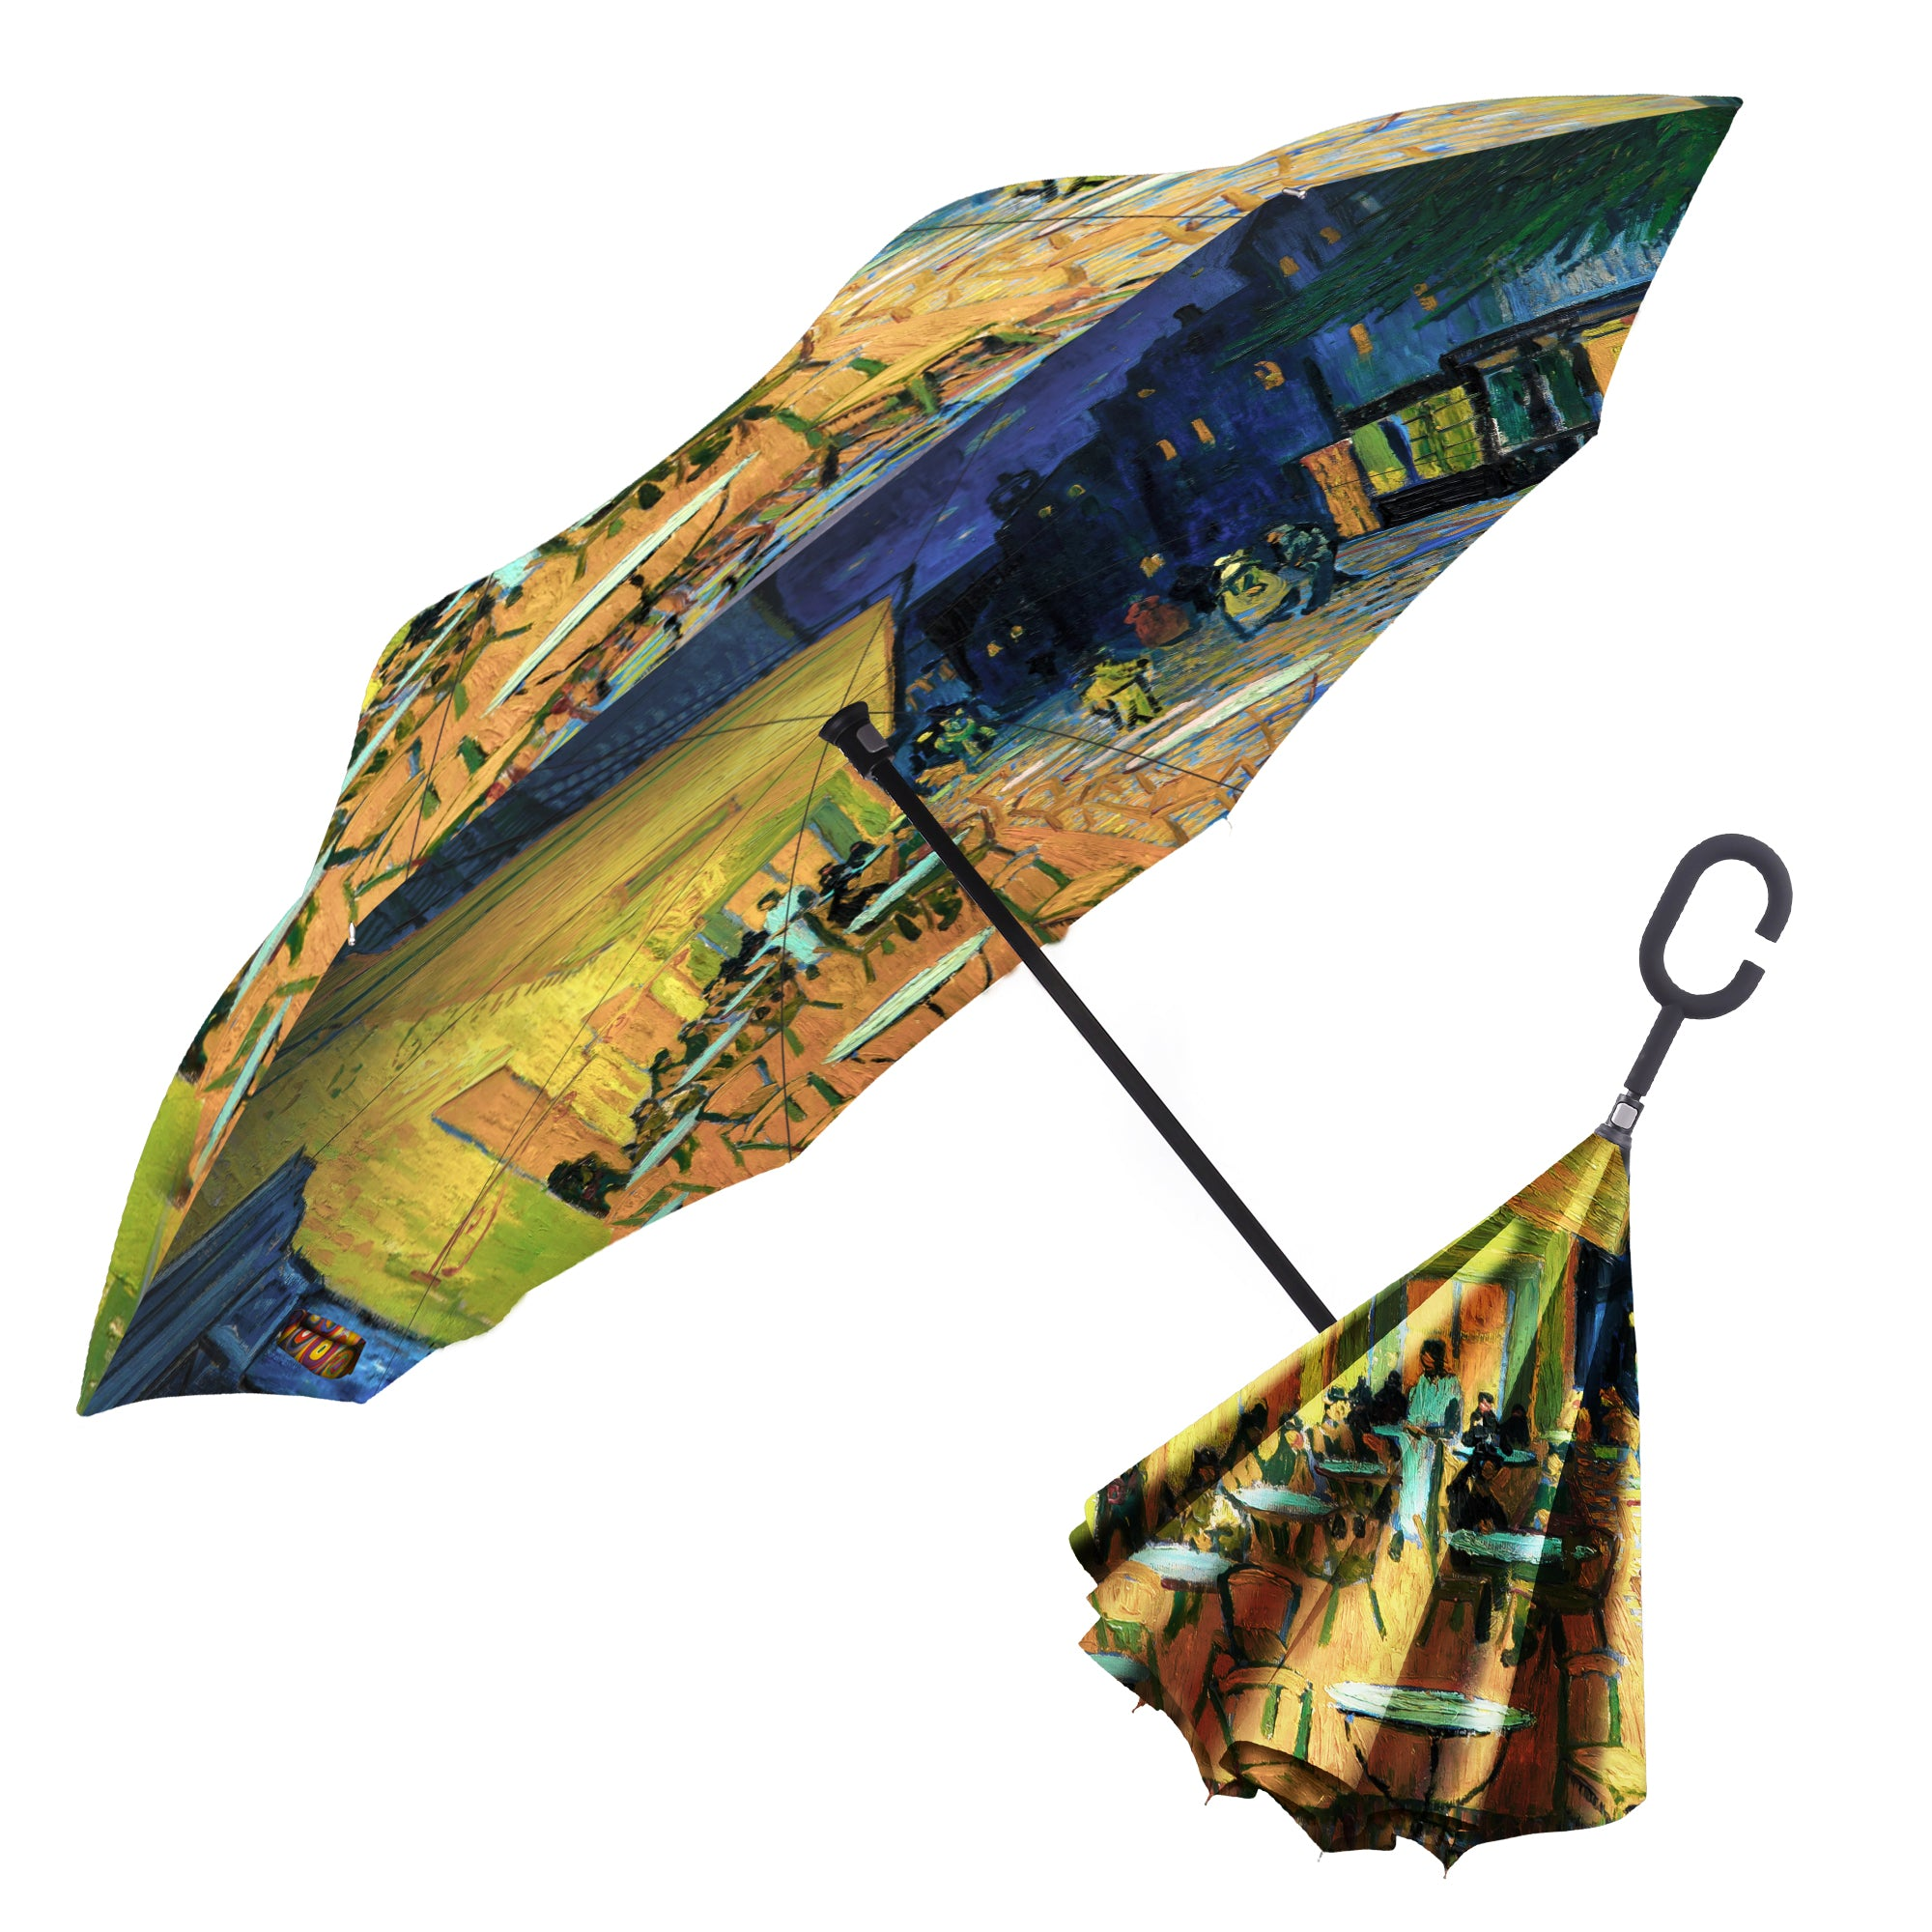 Image of a RainCaper van Gogh's Café Terrace at Night inverted umbrella shown both open and closed